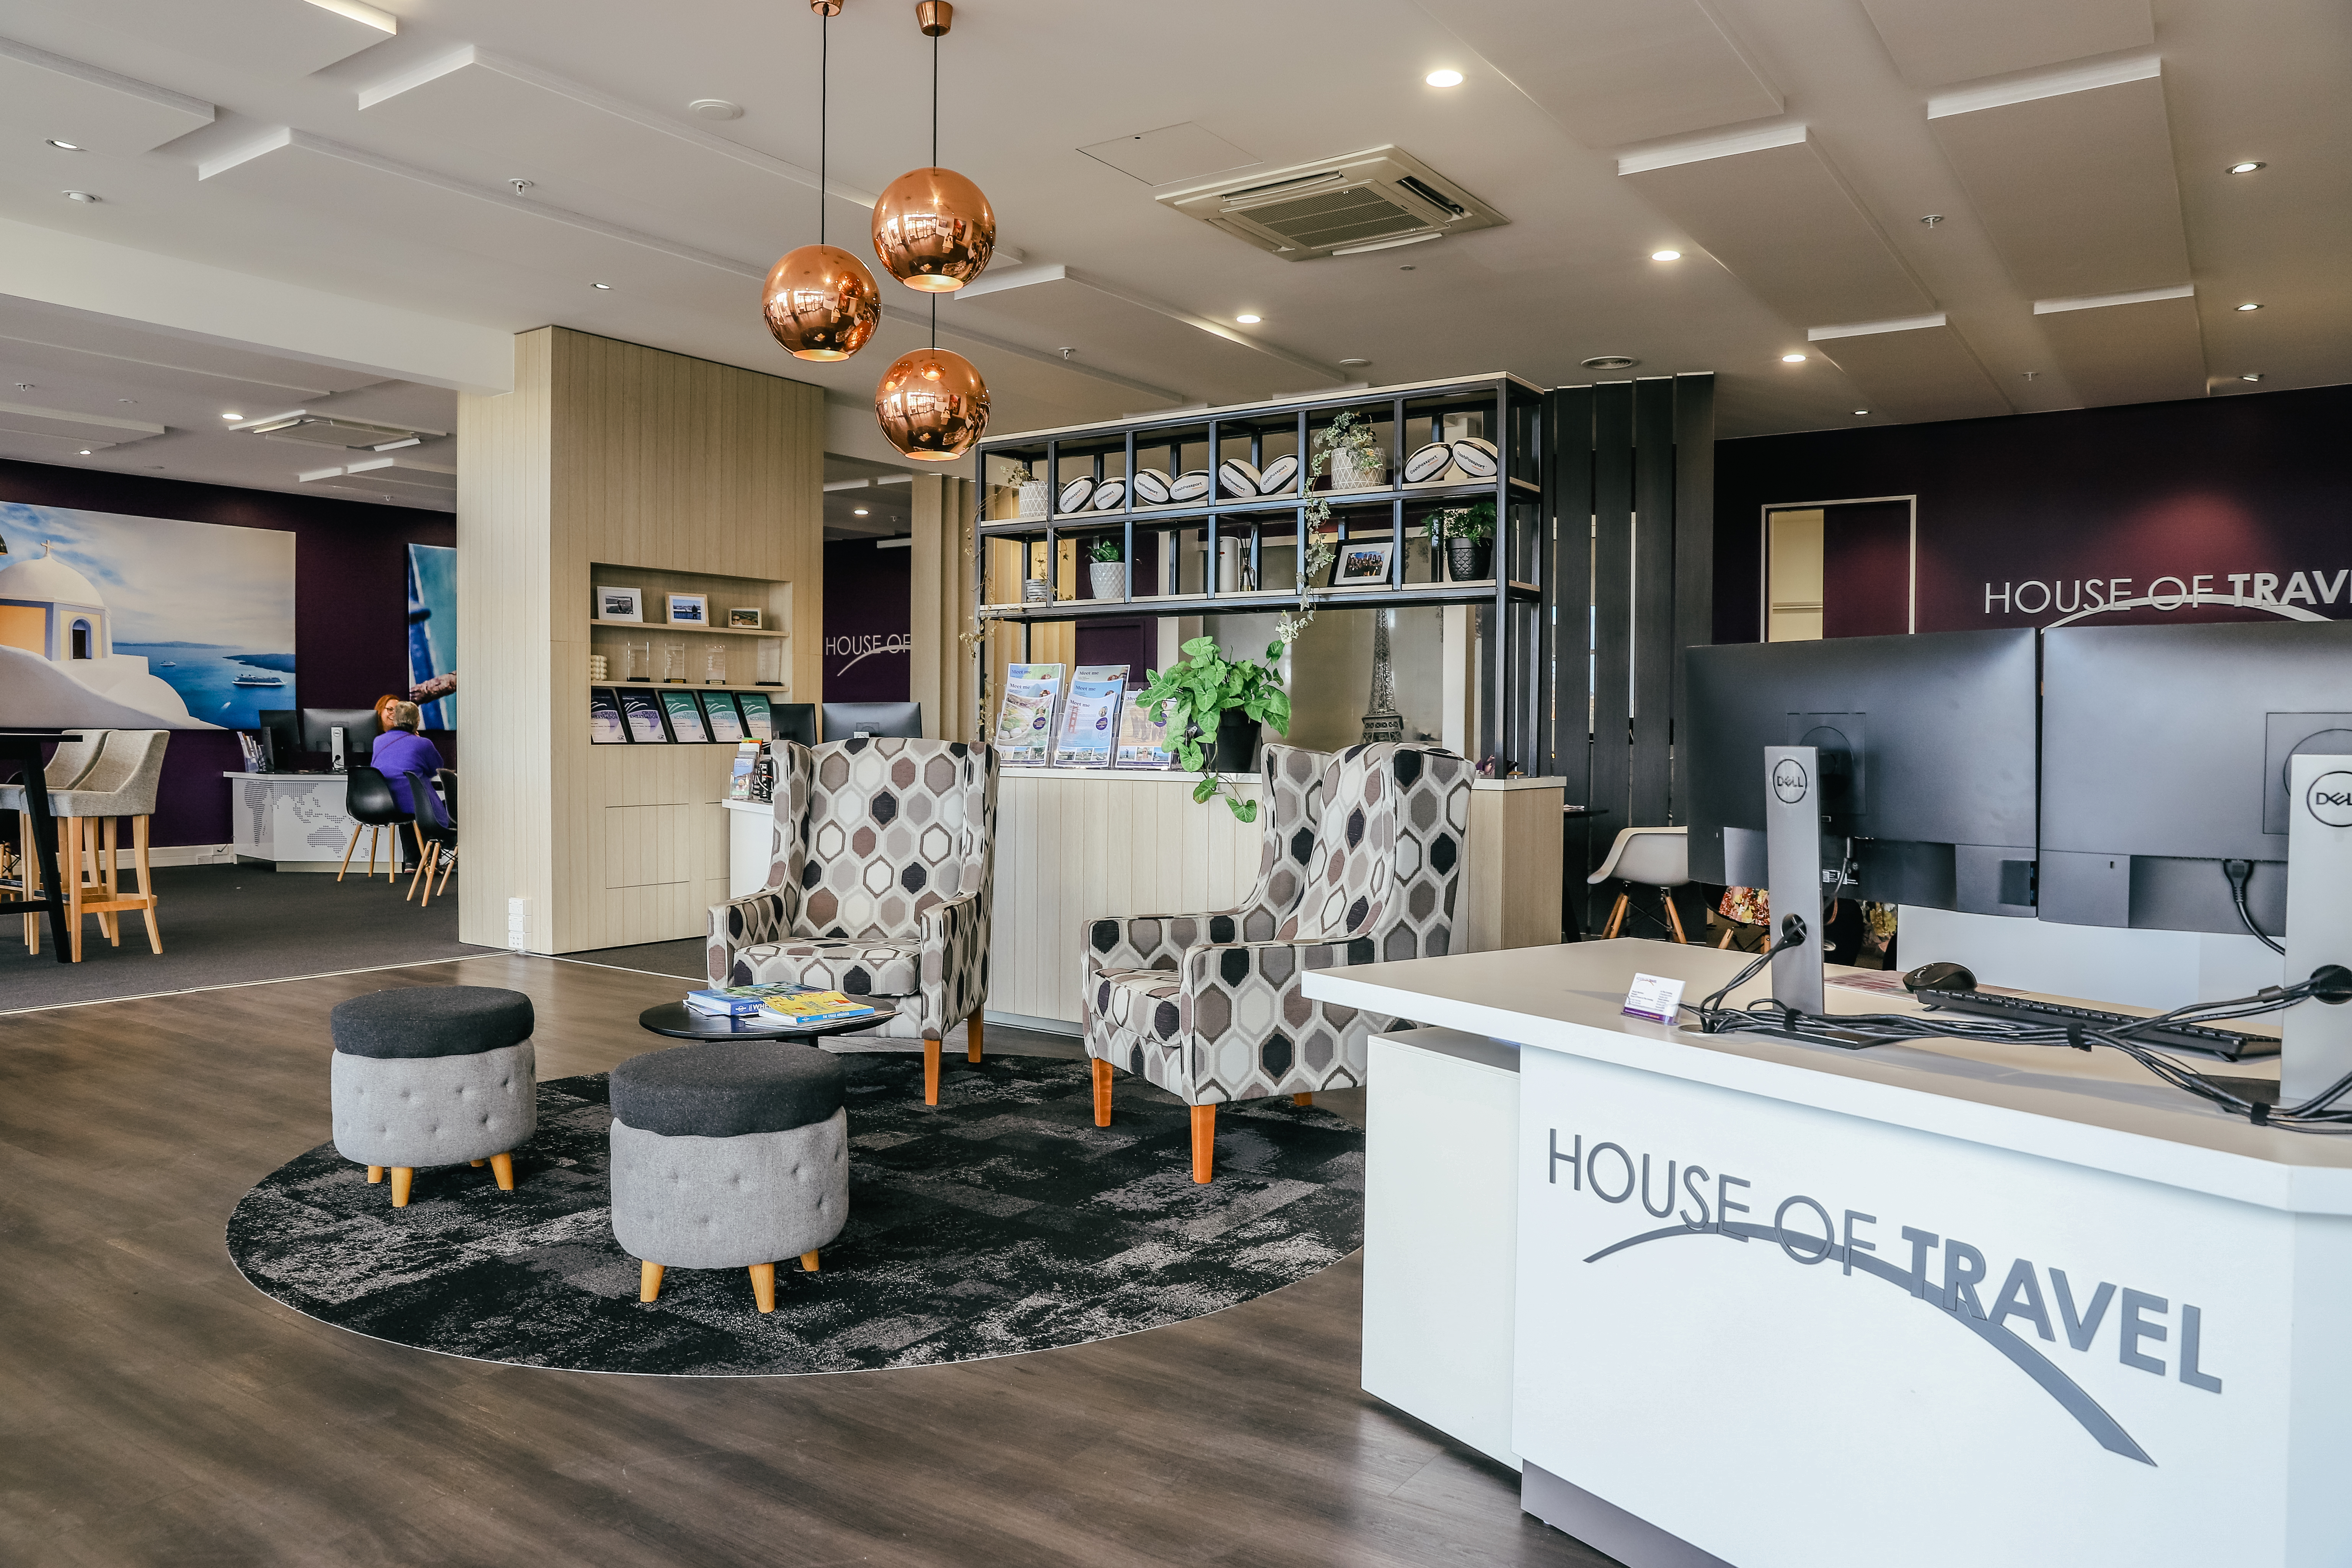 House of Travel Retail fitout Inspace